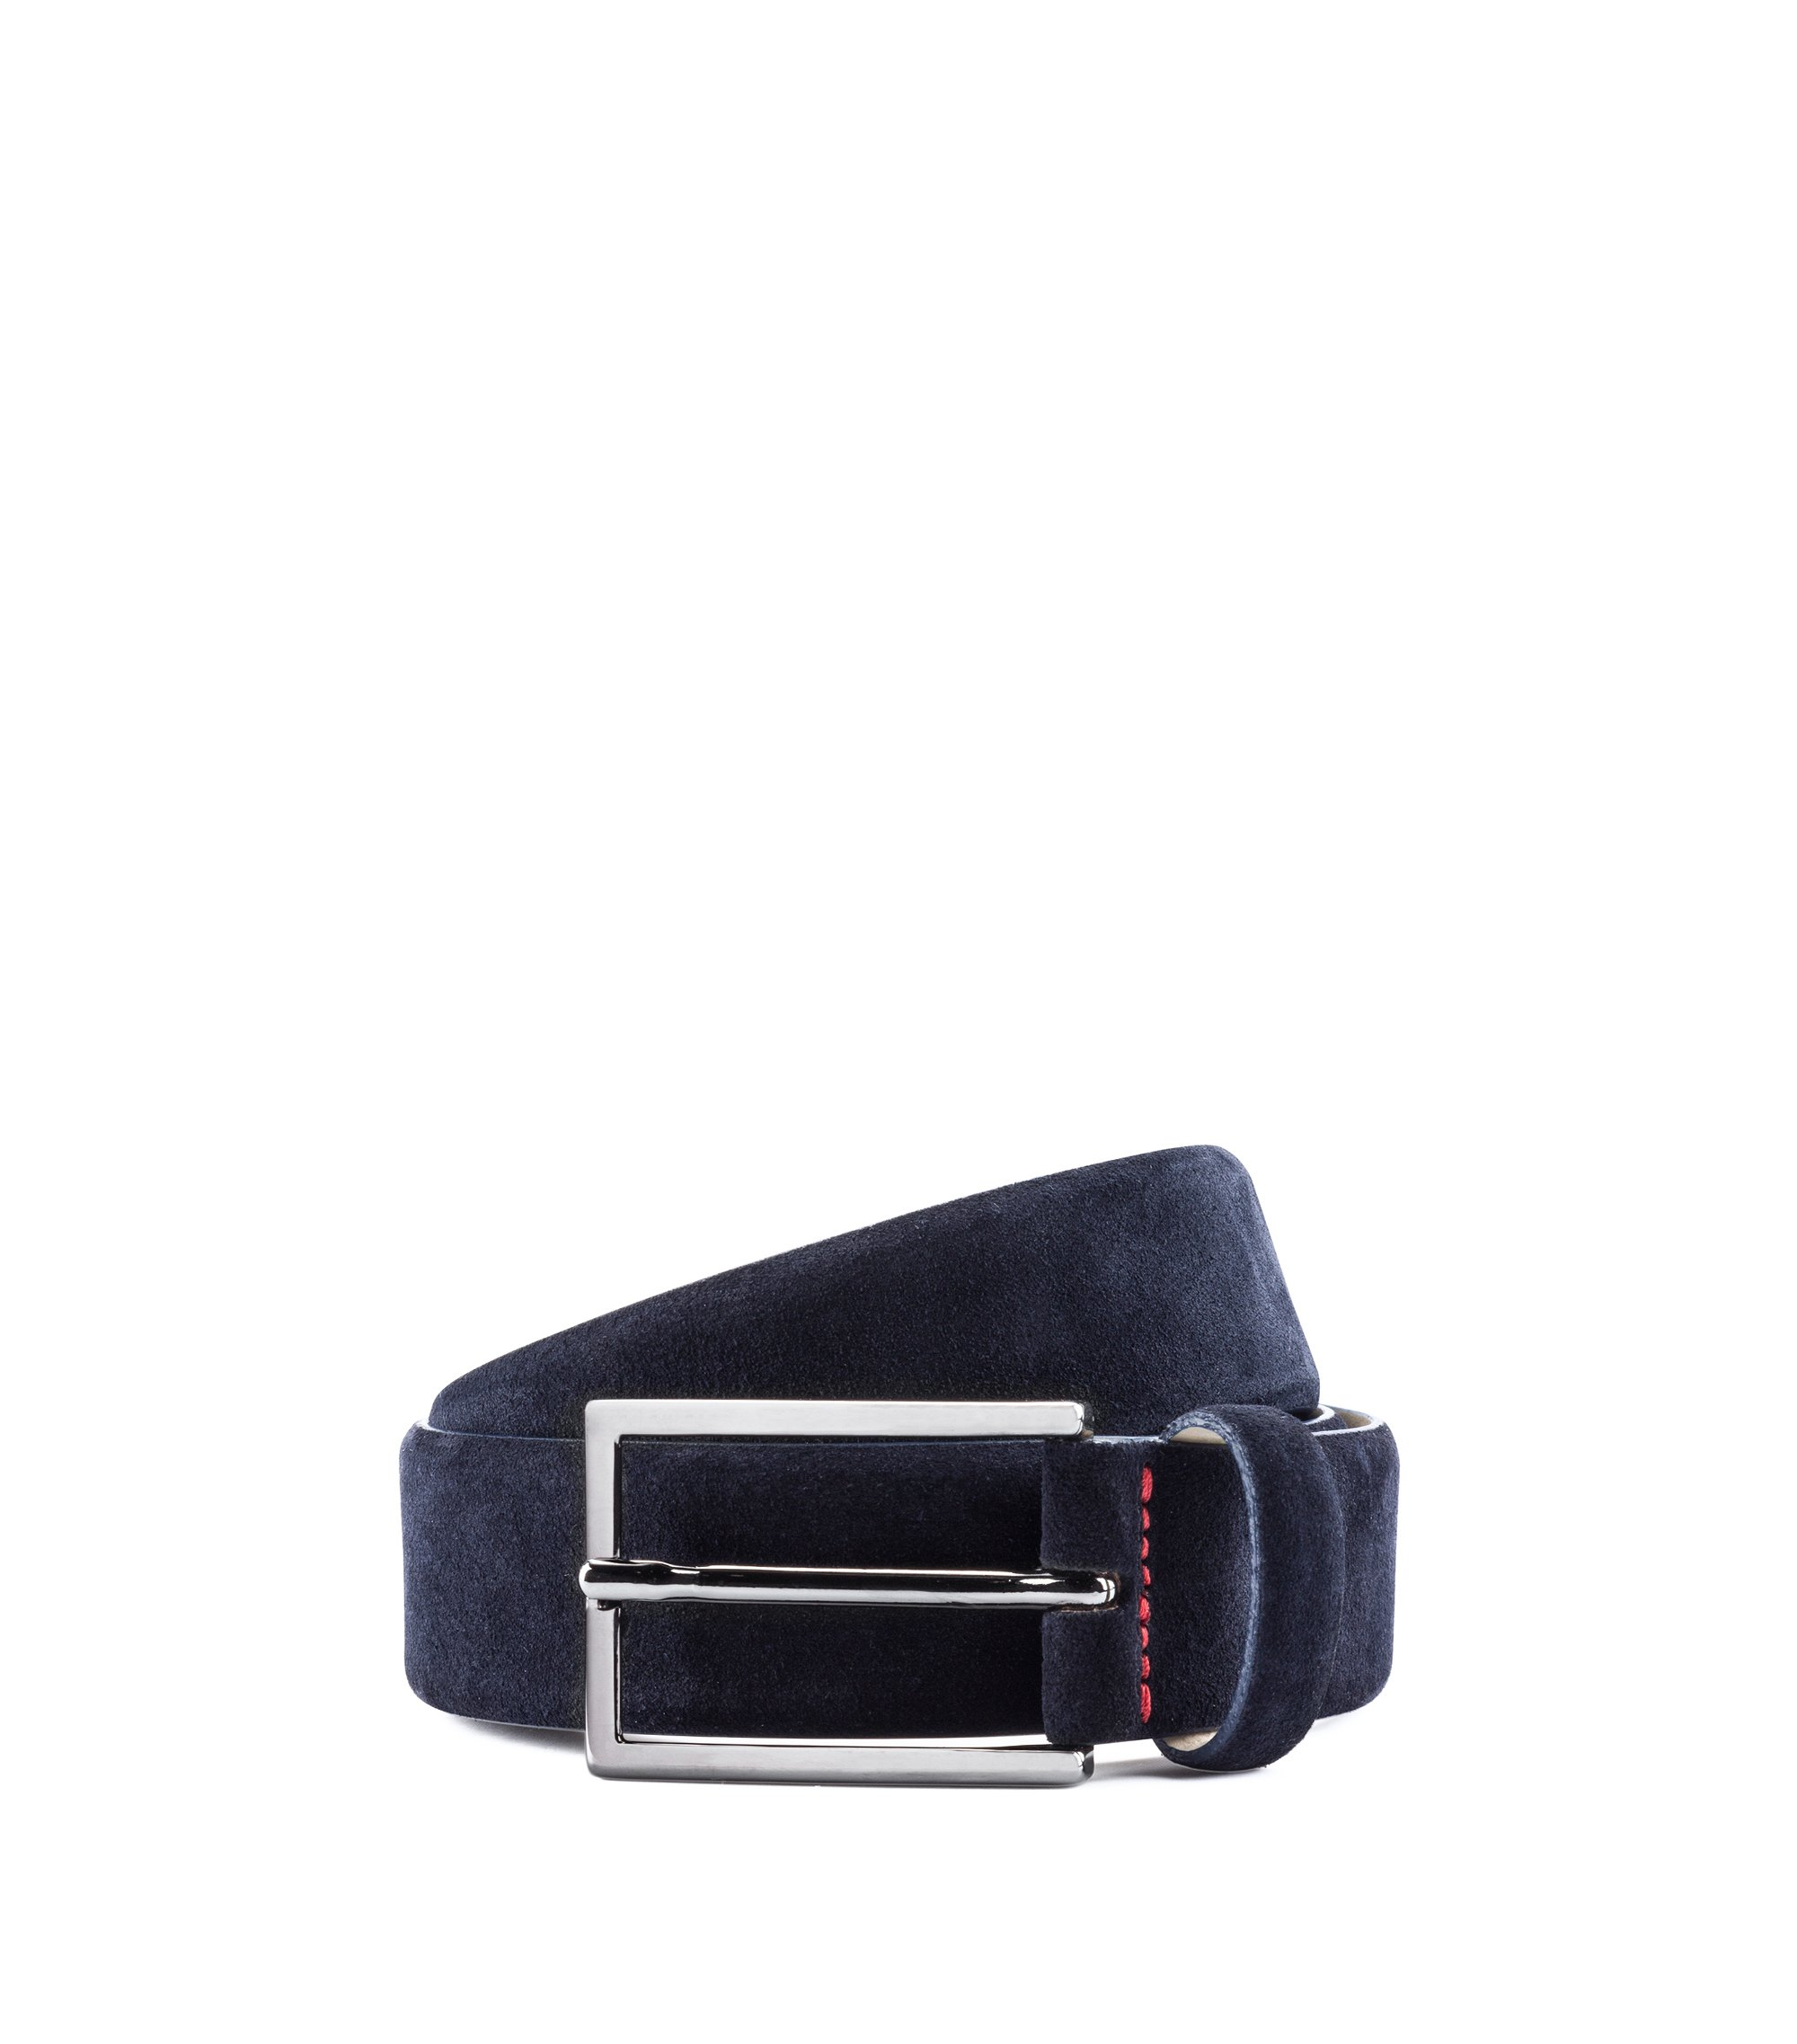 Suede Belt | Gavrilo SL, Dark Blue